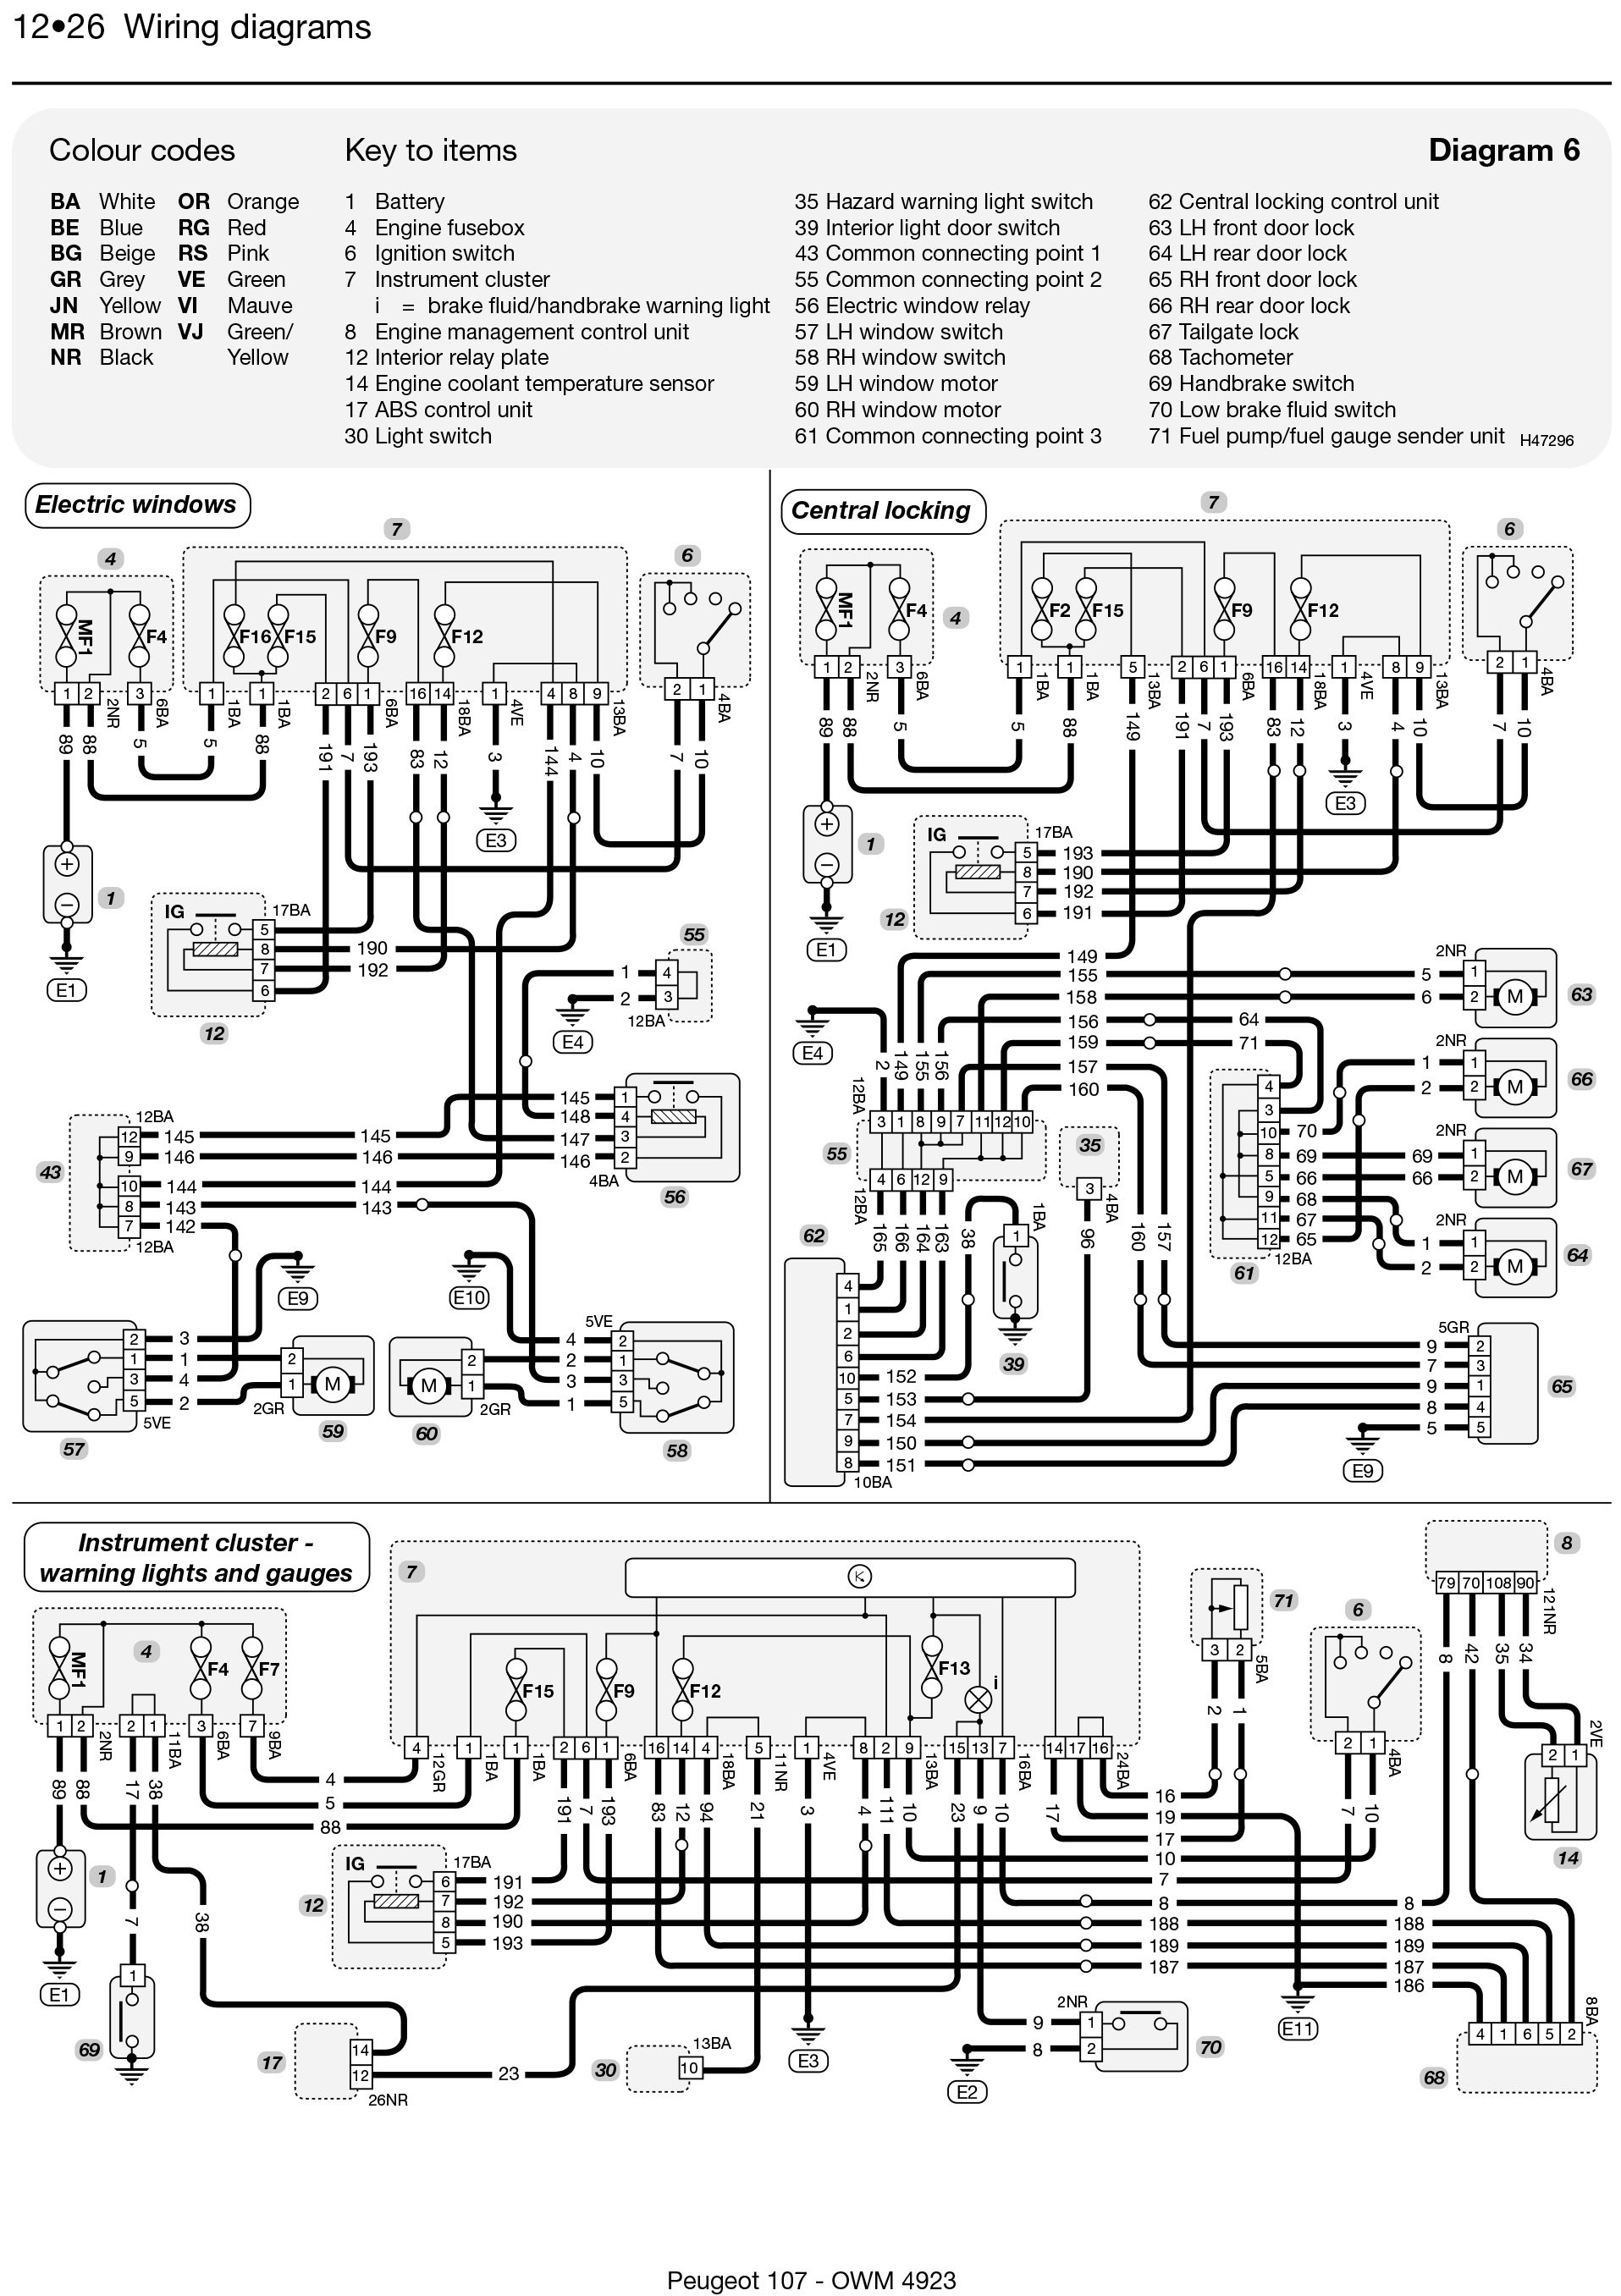 Peugeot 107 Wiring Diagram Car Diagrams Explained Peugeot Wiring Diagrams